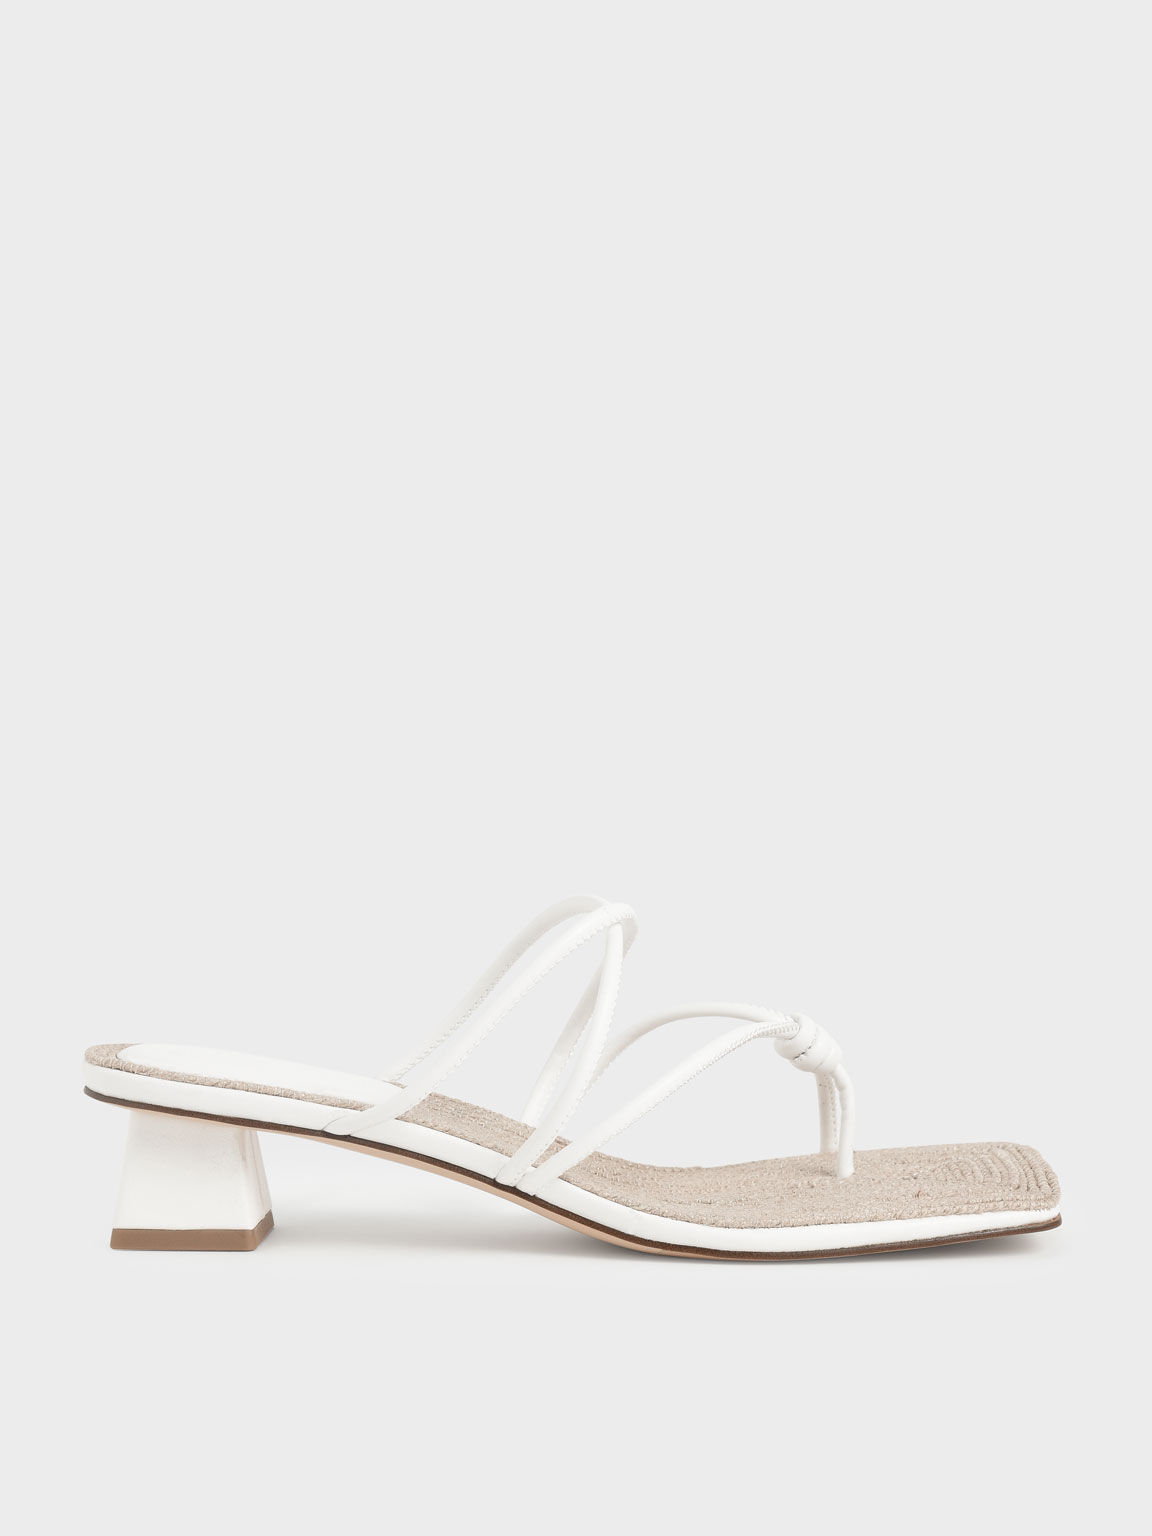 Toe Loop Strappy Heeled Sandals, White, hi-res